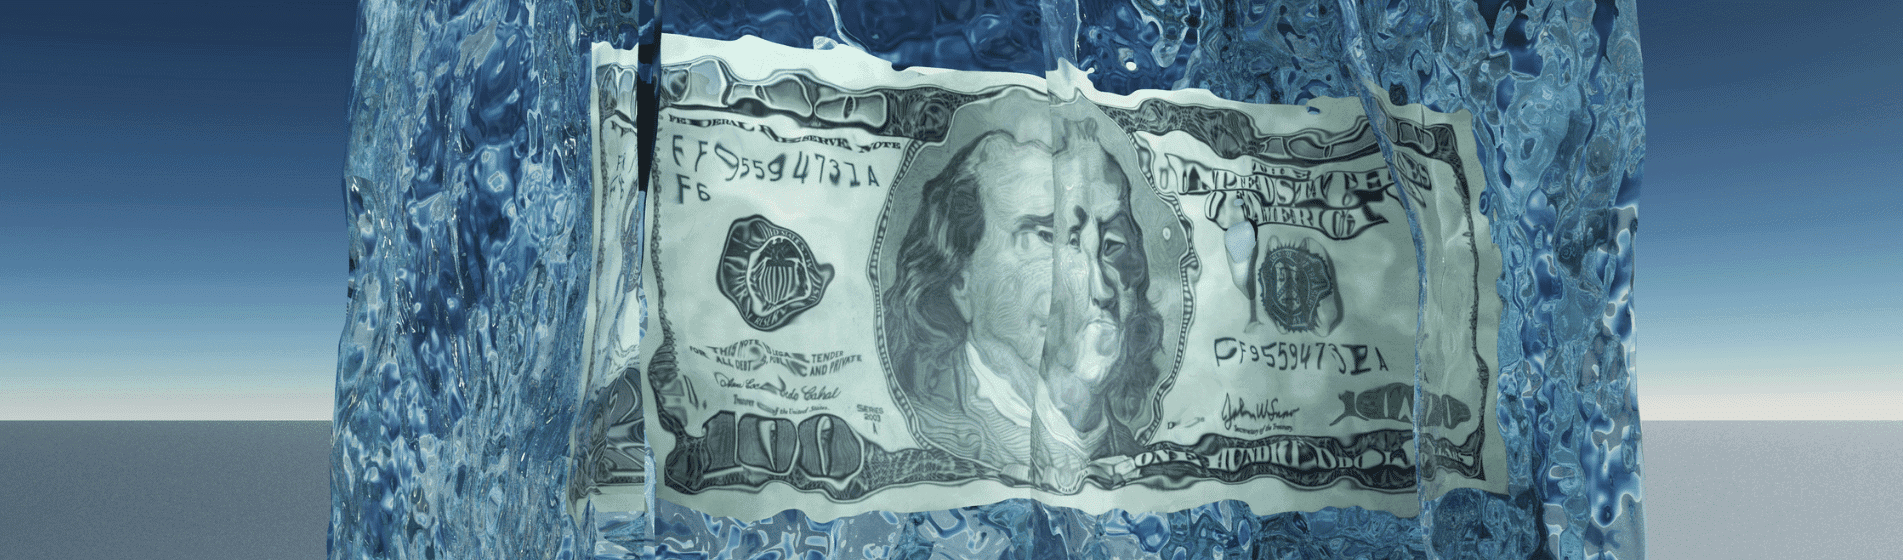 How to Prevent a Frozen Bank Account Offshore